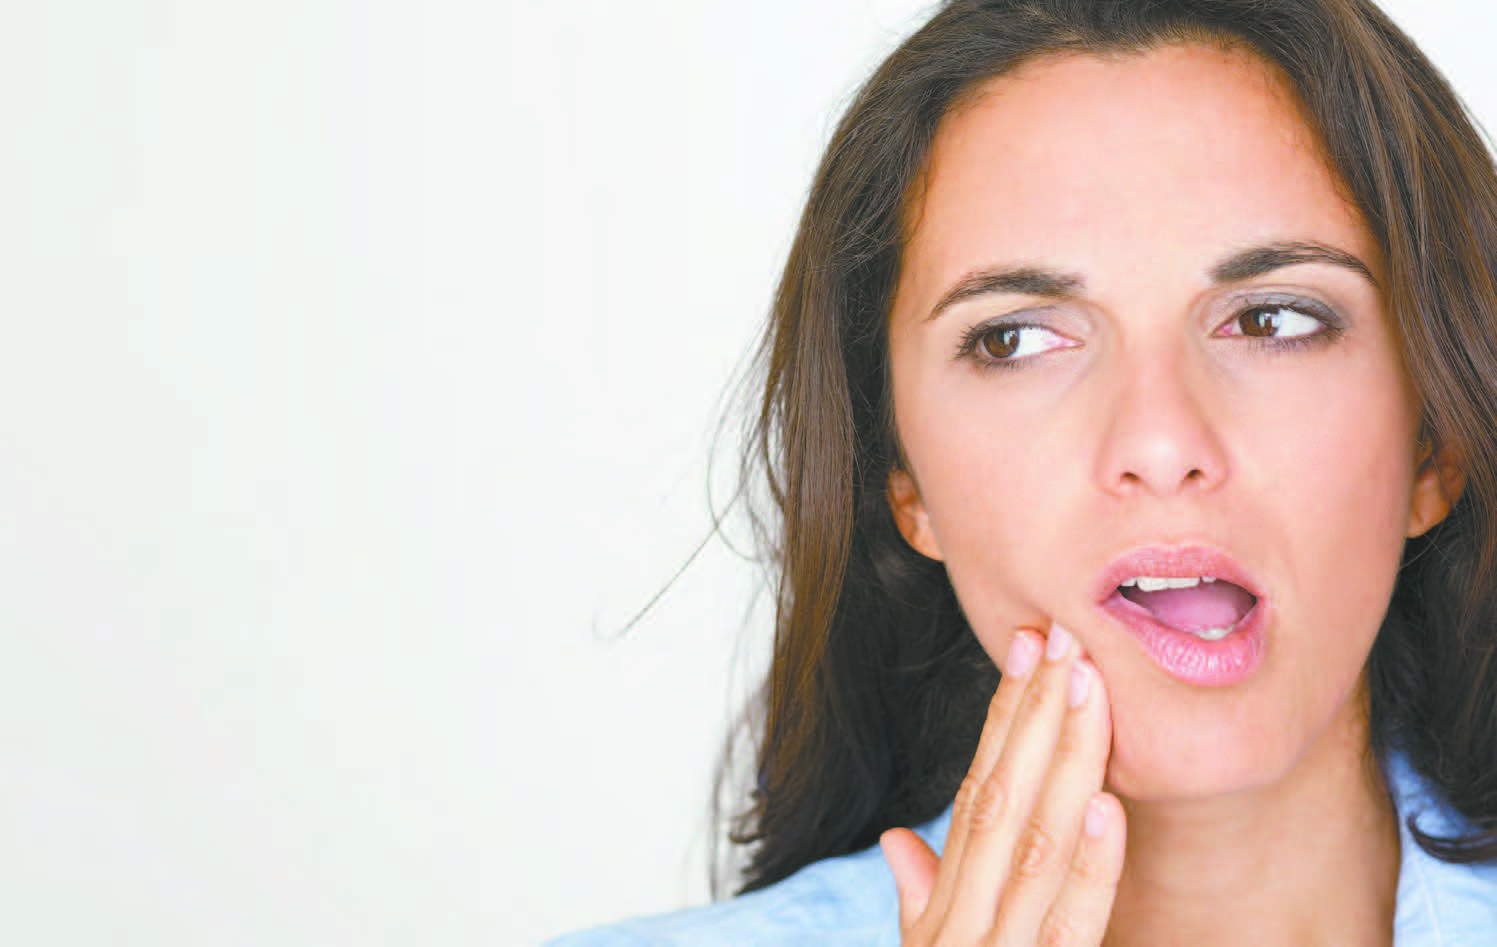 Sensitive Teeth: What Are My Treatment Options